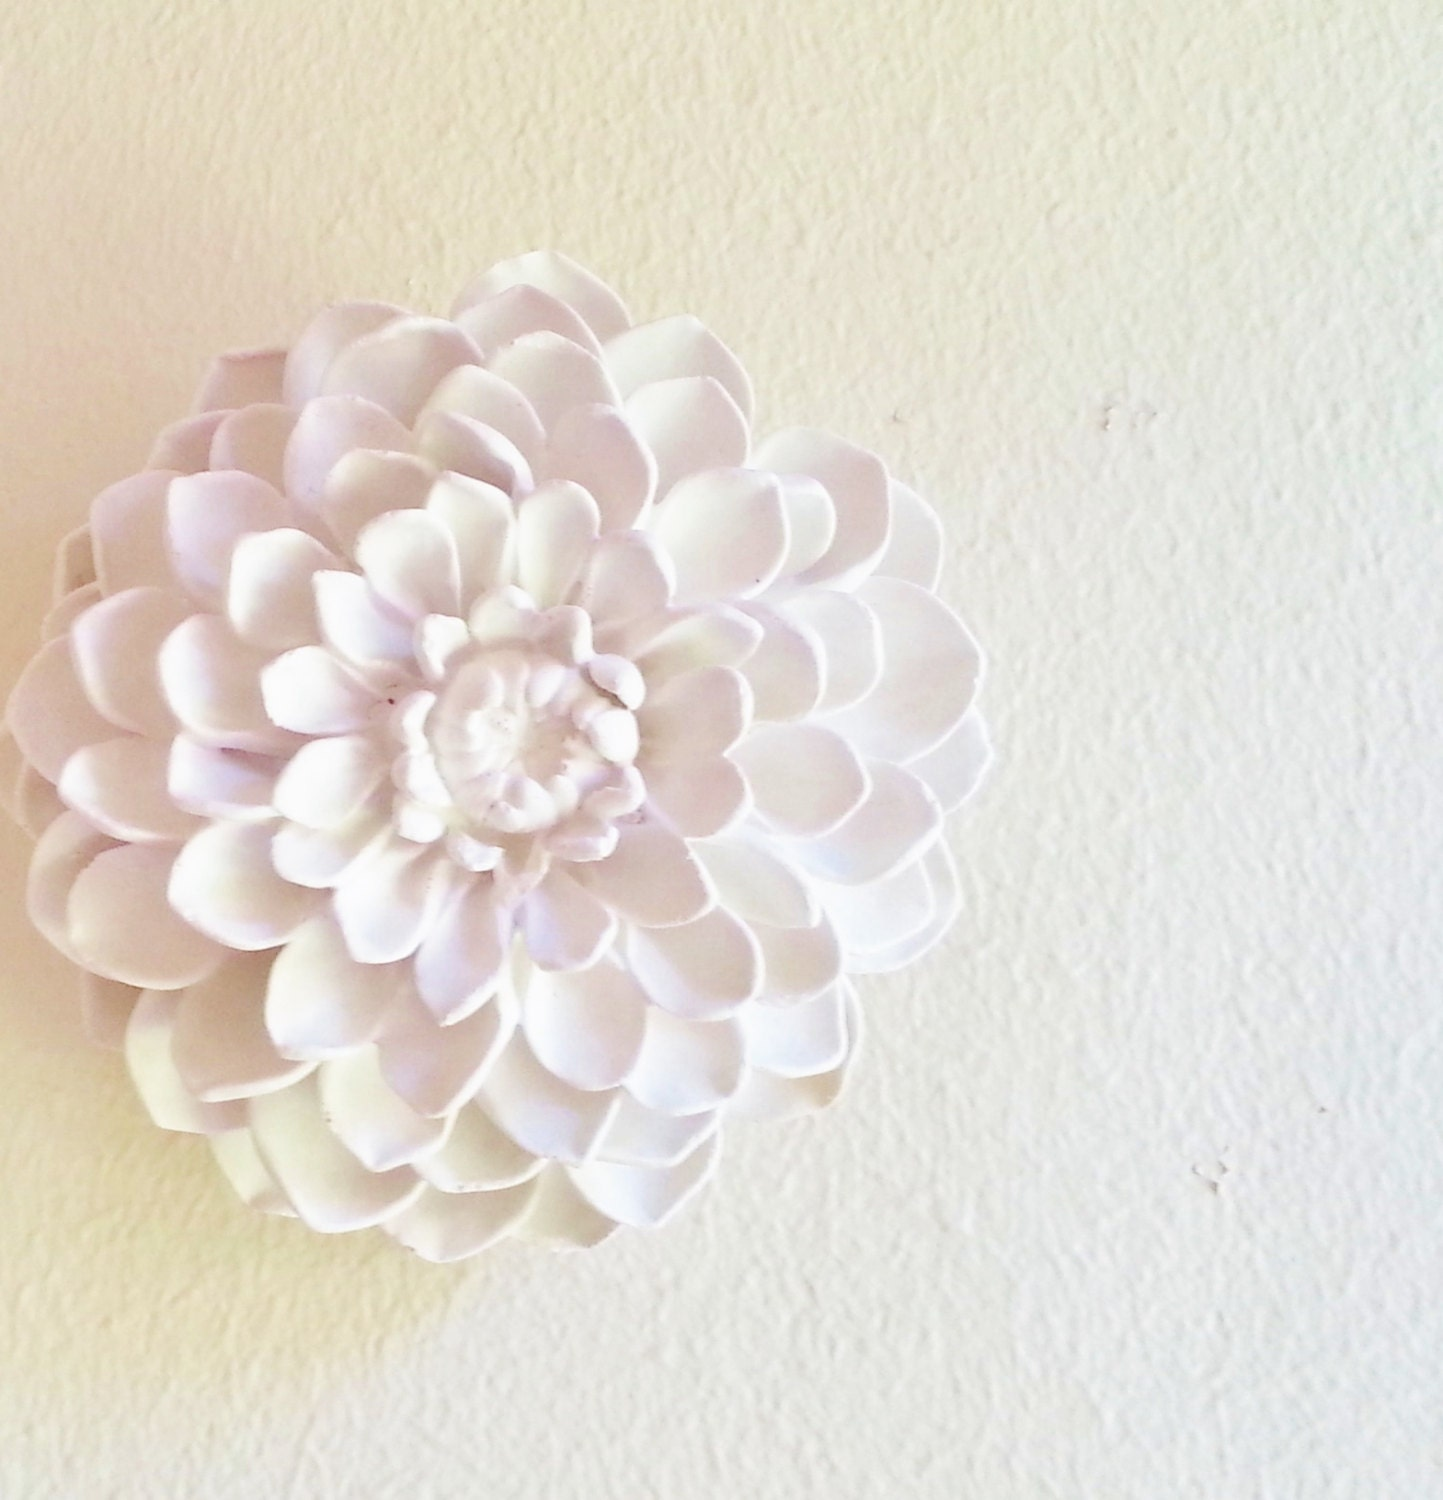 Wall Decor White Flowers : Dahlia flower sculpture boheme stone flowers modern